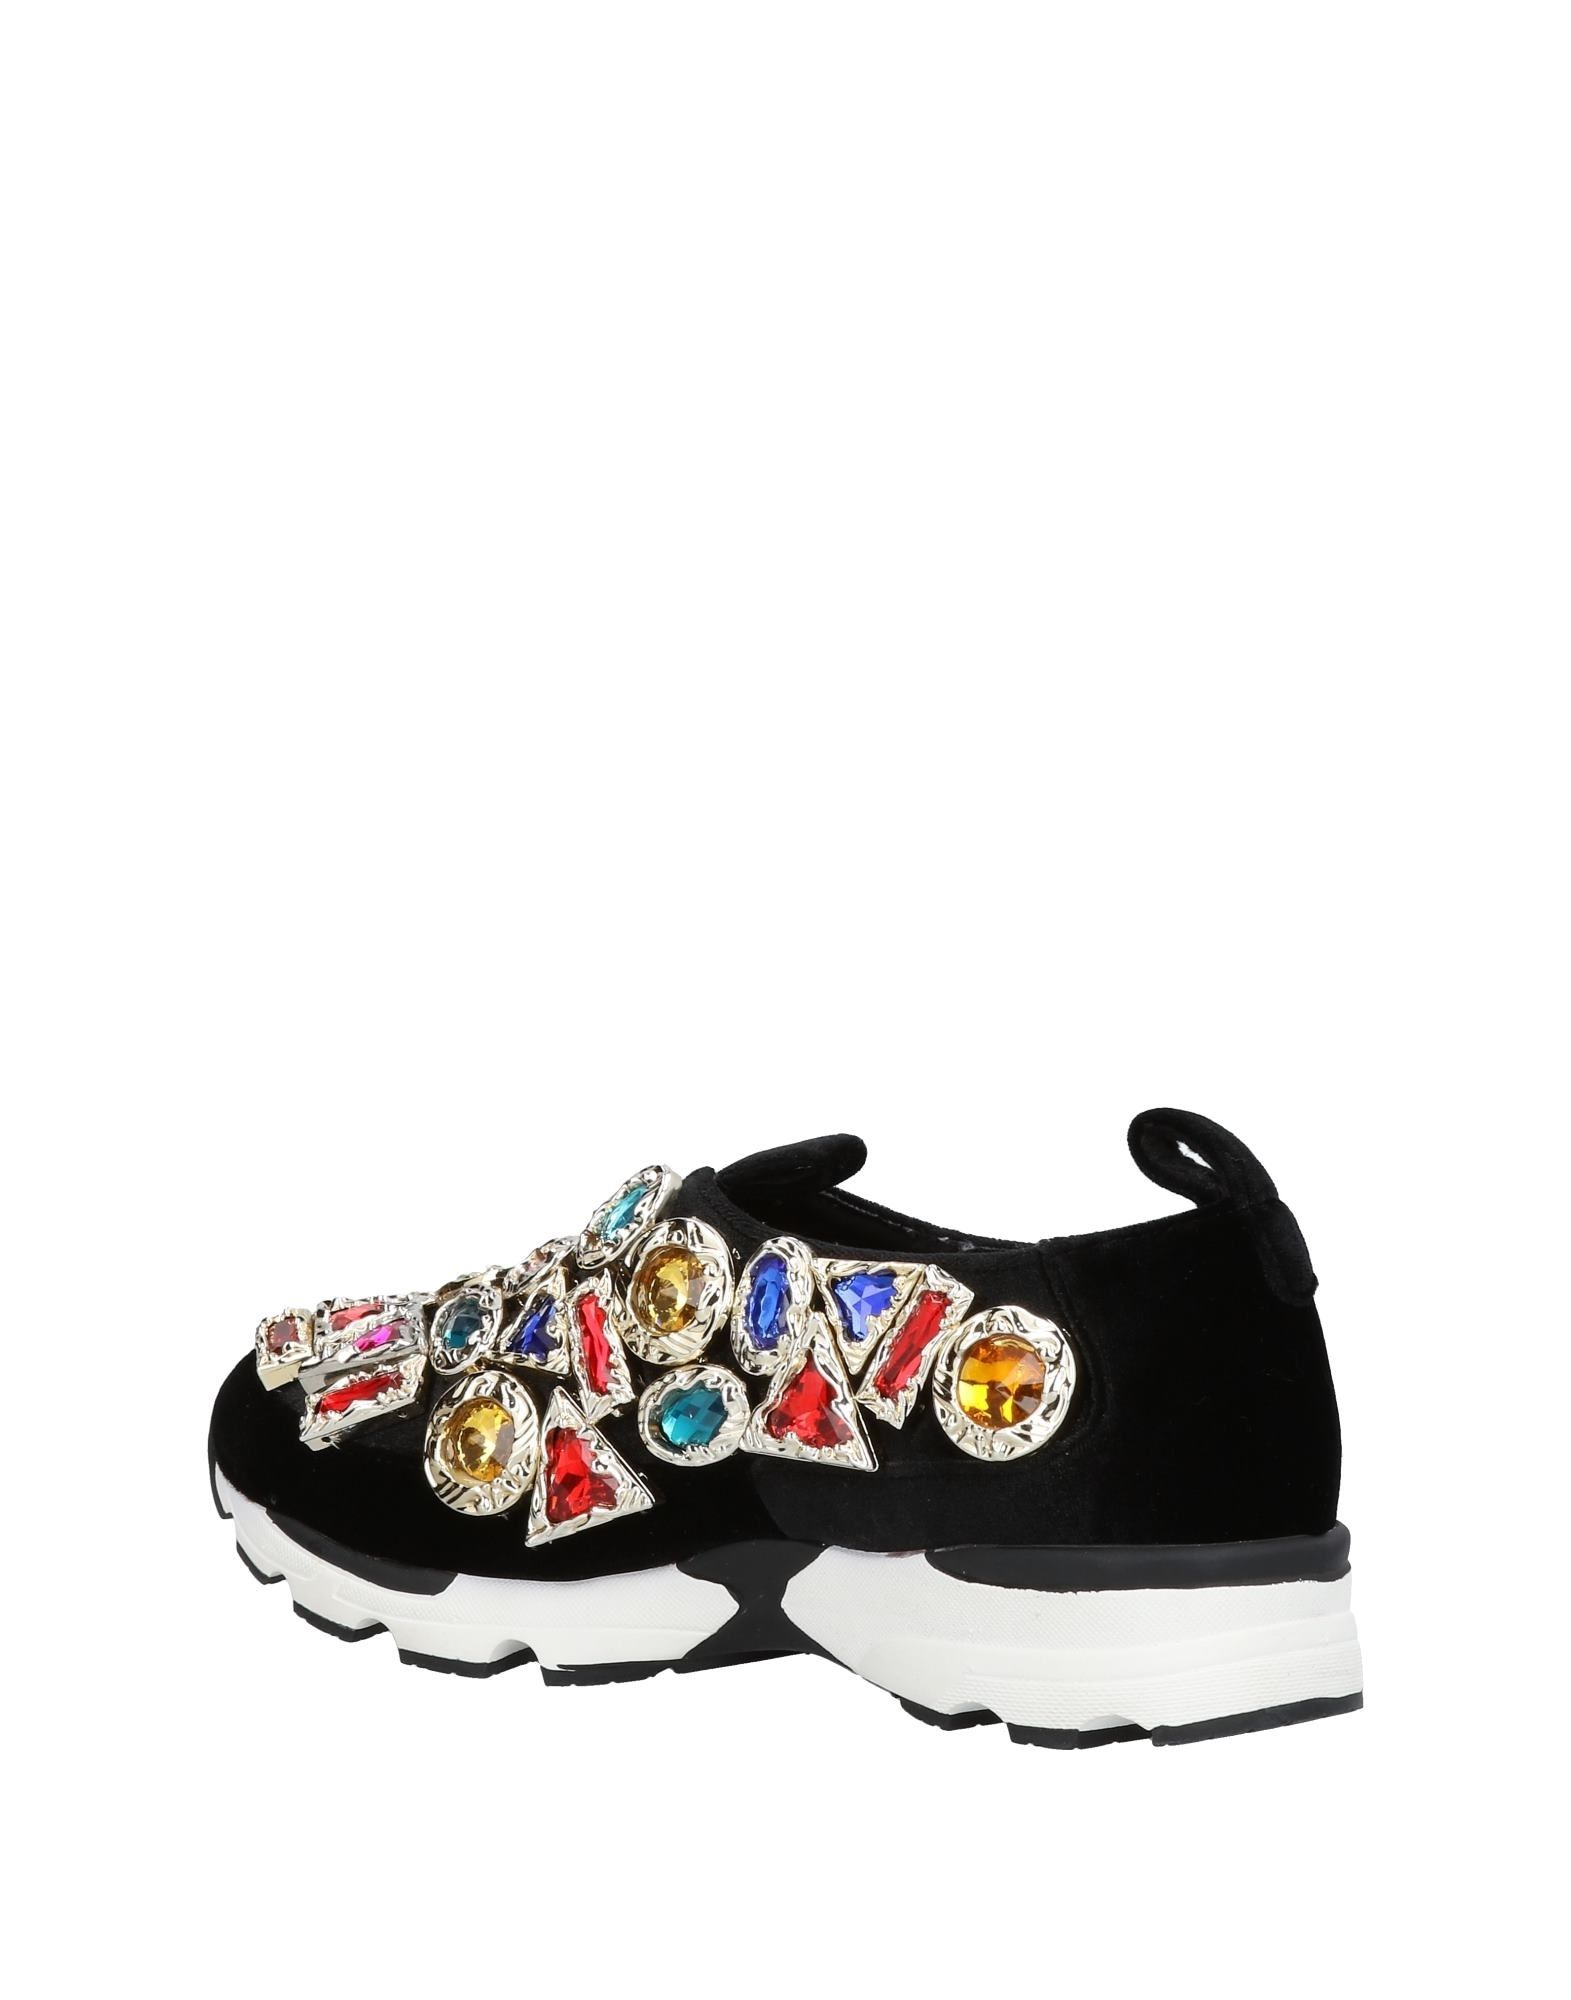 Sneakers Jeffrey Campbell Femme - Sneakers Jeffrey Campbell sur